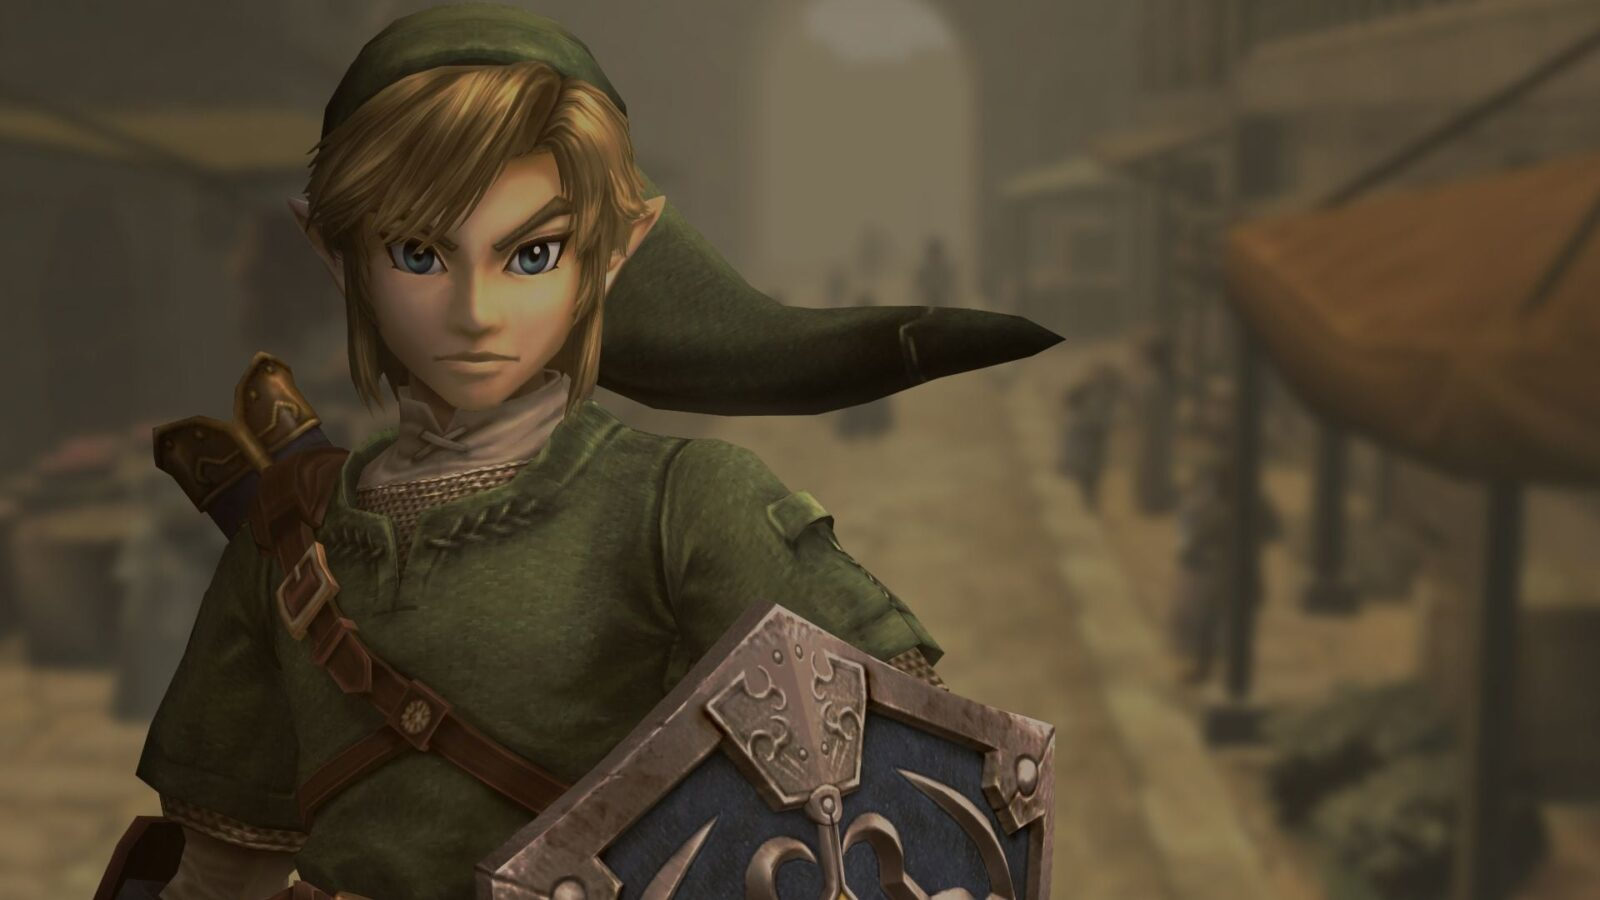 The Legend of Zelda full HD image